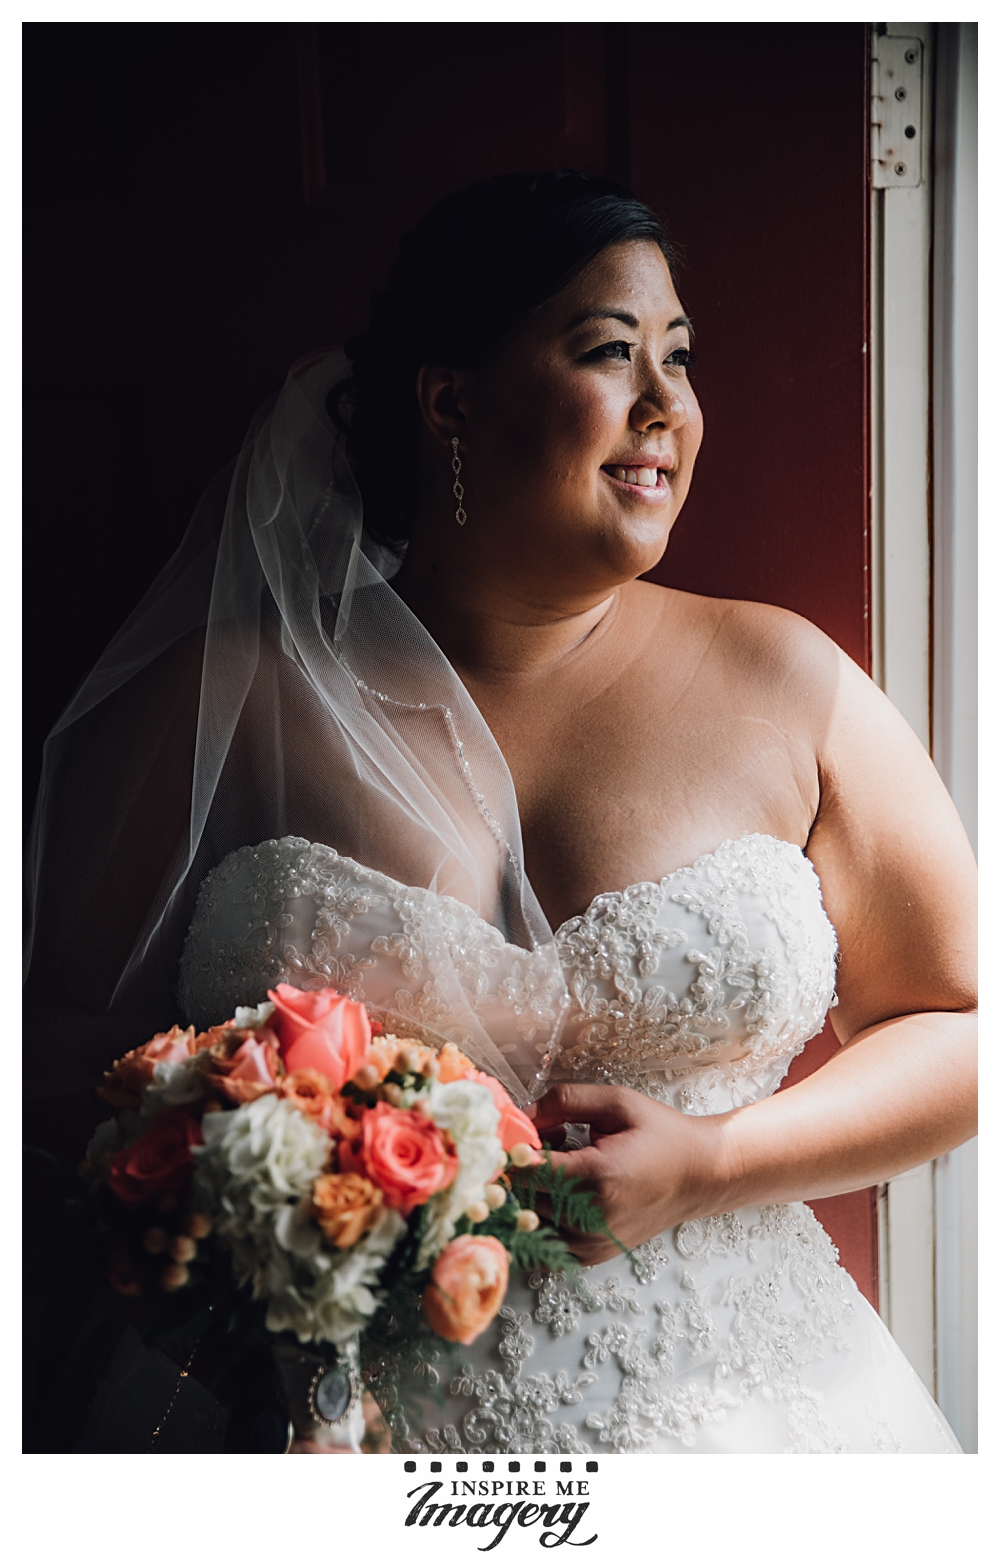 Our beautiful bride in gorgeous light.